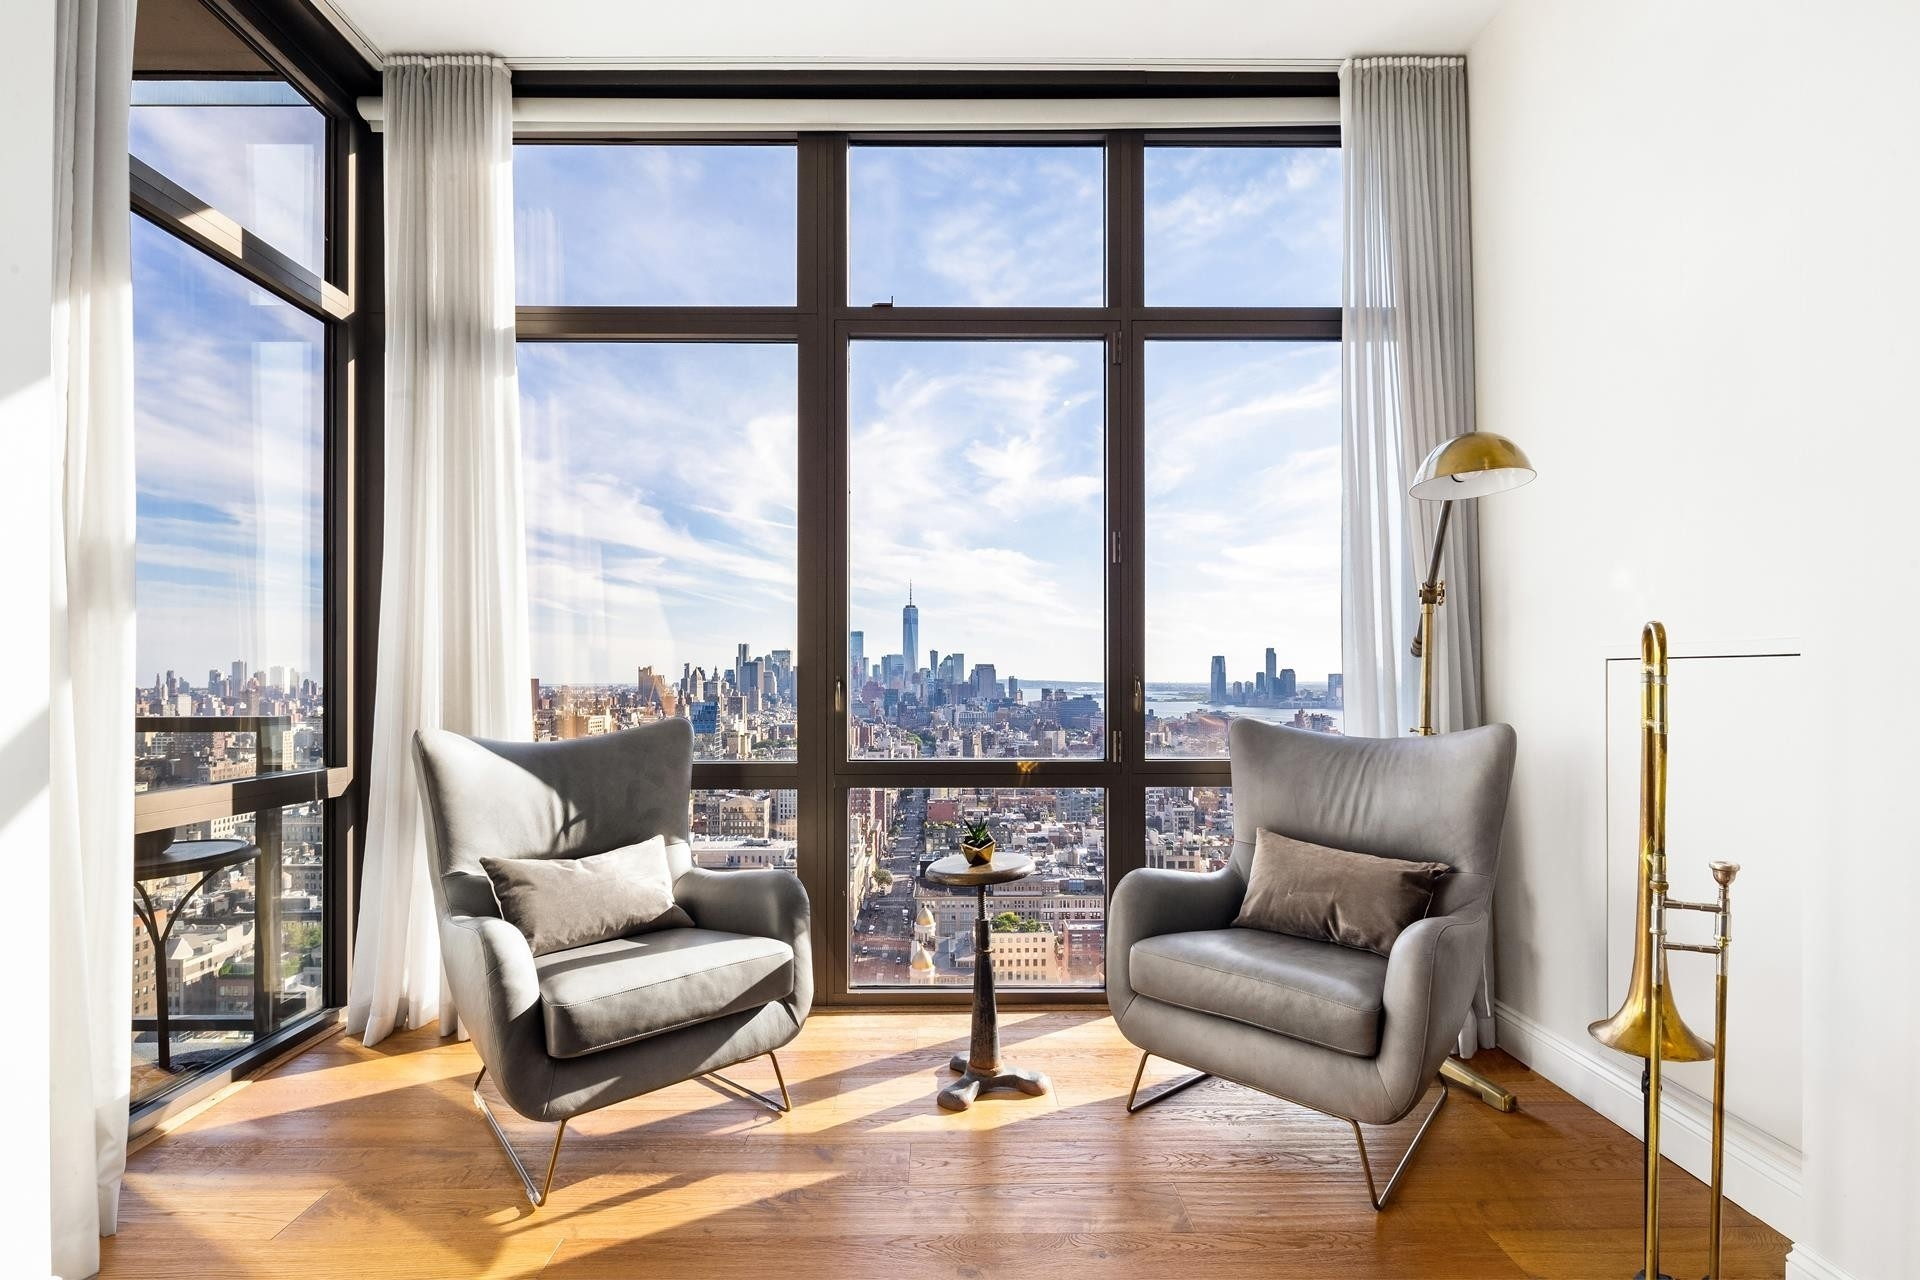 2. Condominiums for Sale at Chelsea Stratus, 101 W 24TH ST , PH1C Chelsea, New York, NY 10011